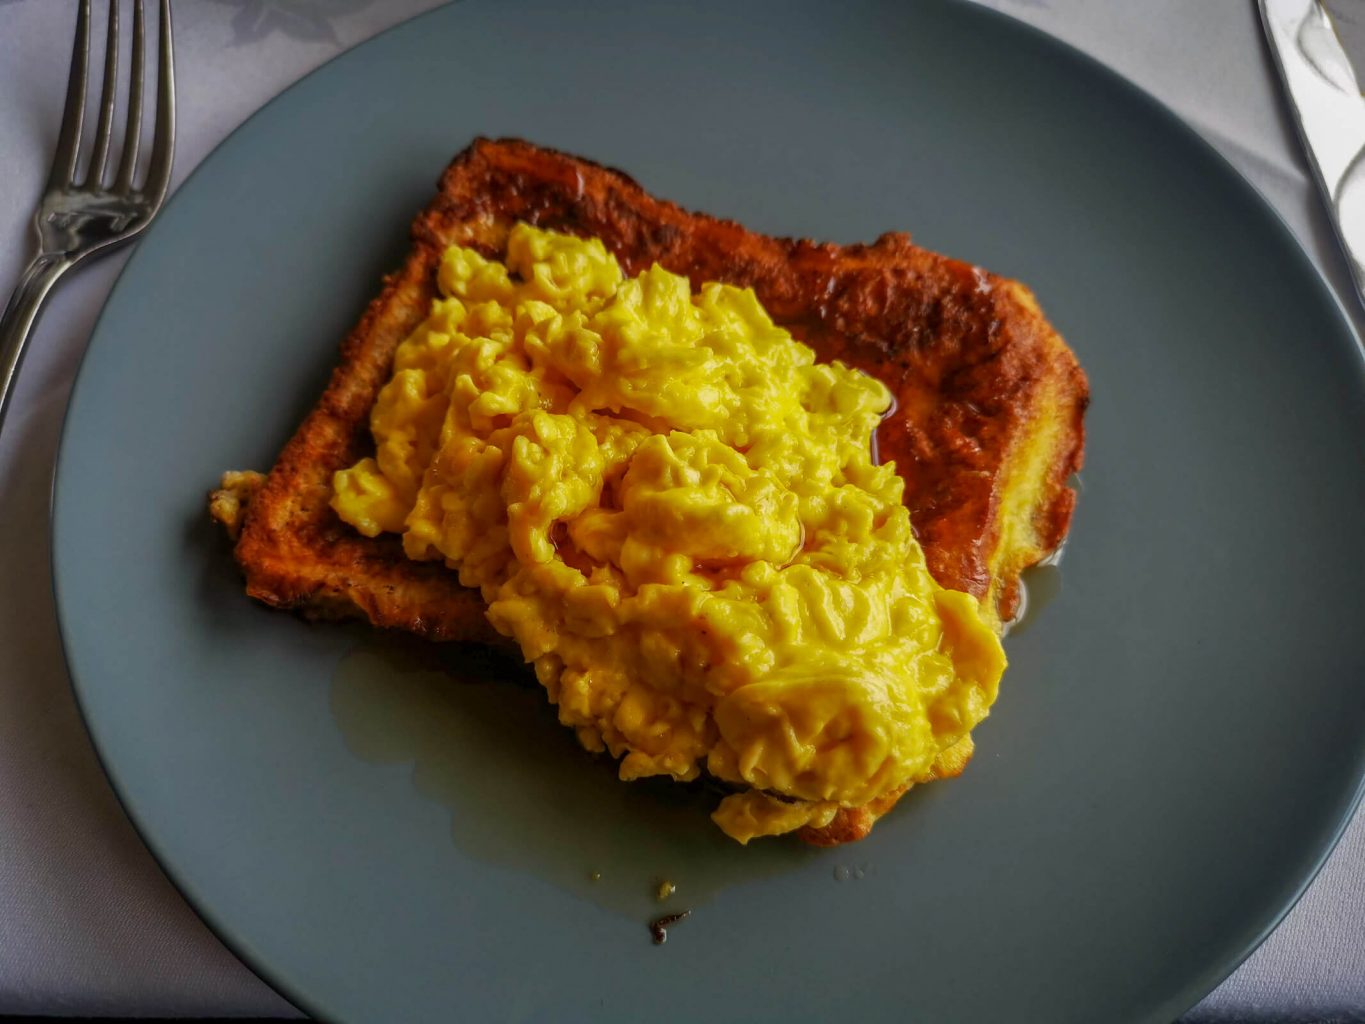 Scrambled Eggs on French toast